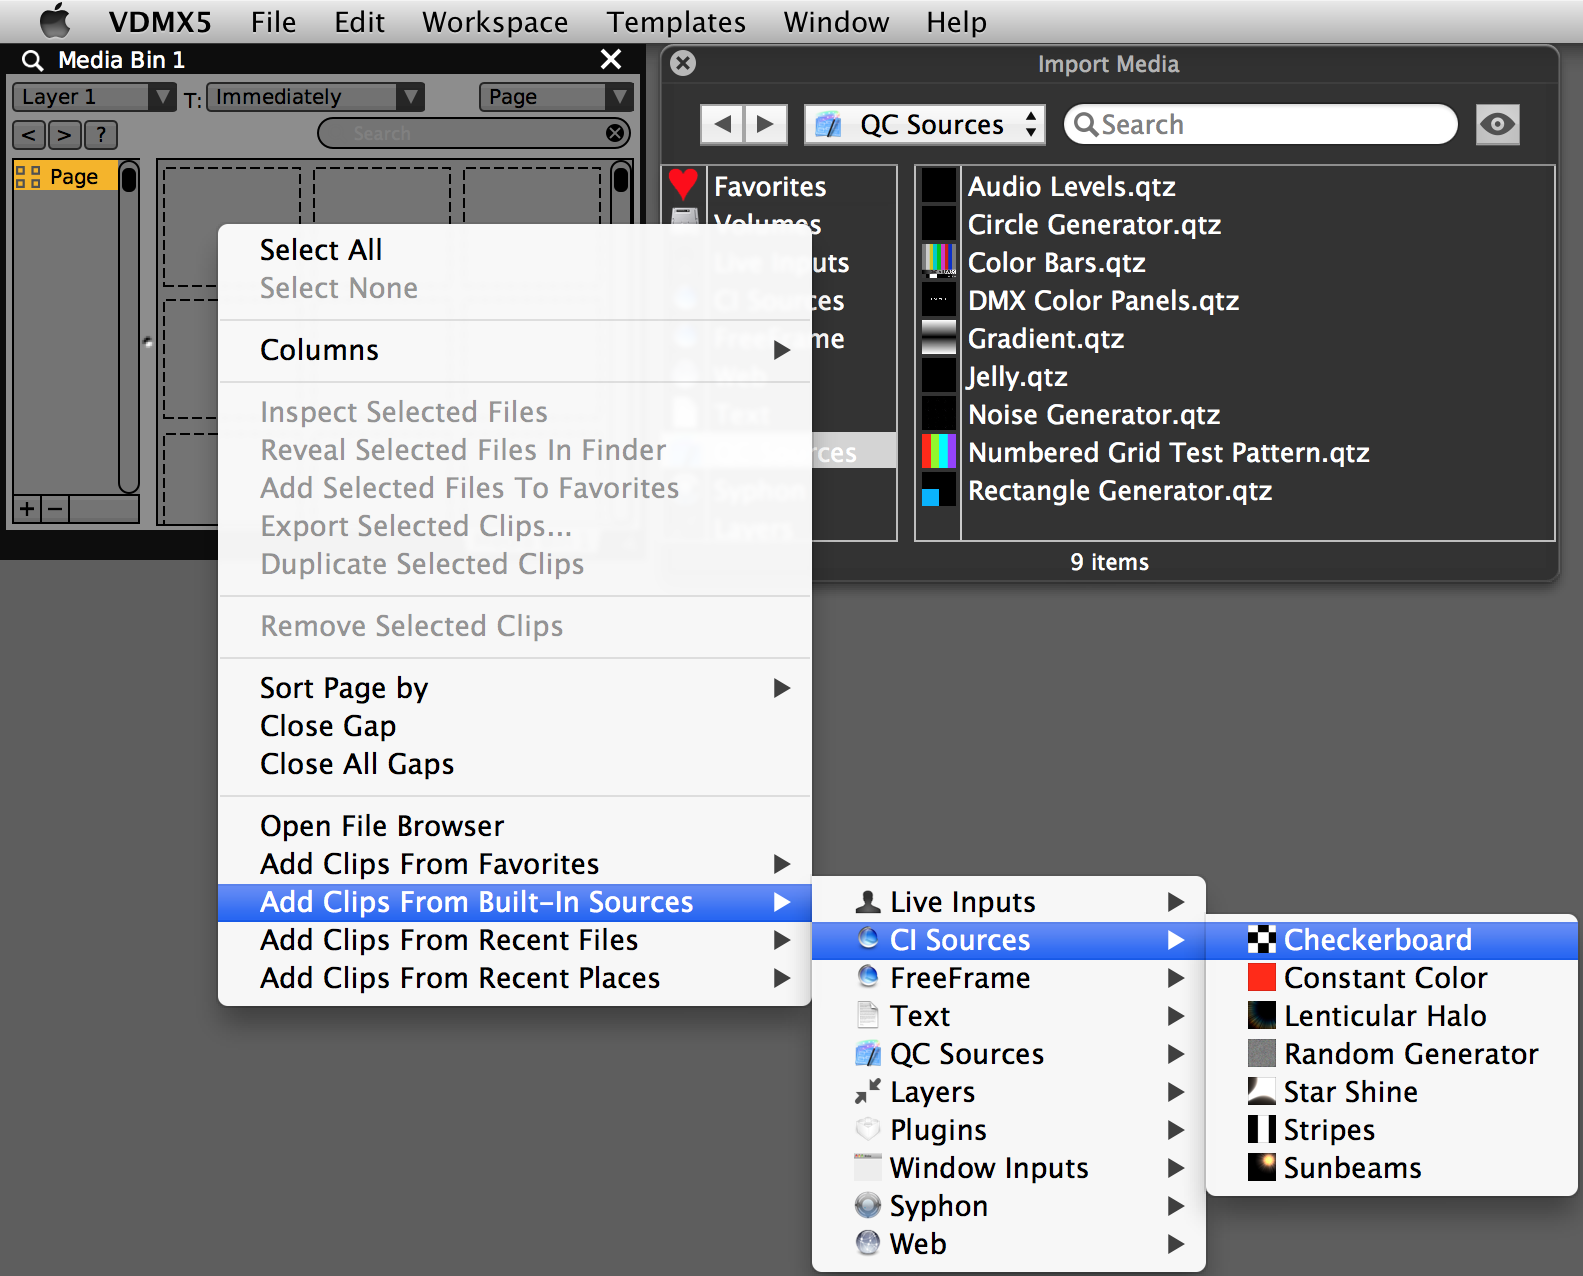 Add built-in sources from the file browser or contextual menu.